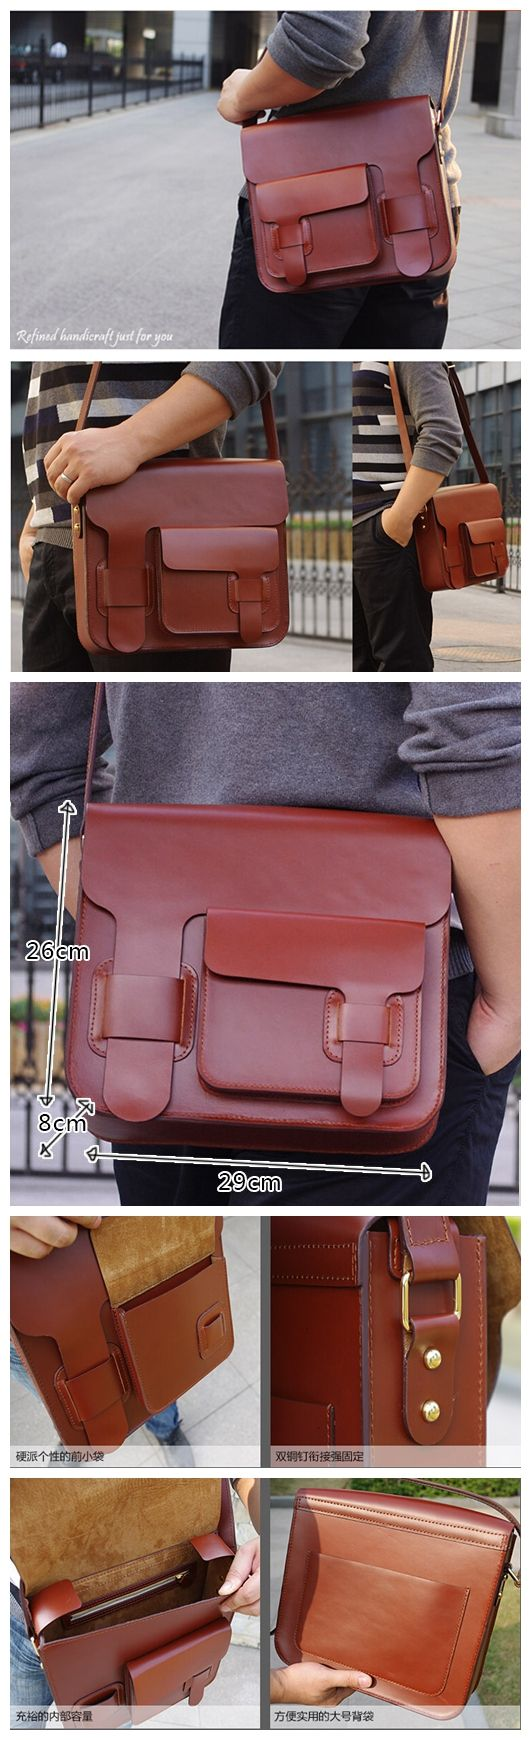 100% Handmade Genuine Leather Messenger Bag, Crossbody Bag, Shoulder Bag